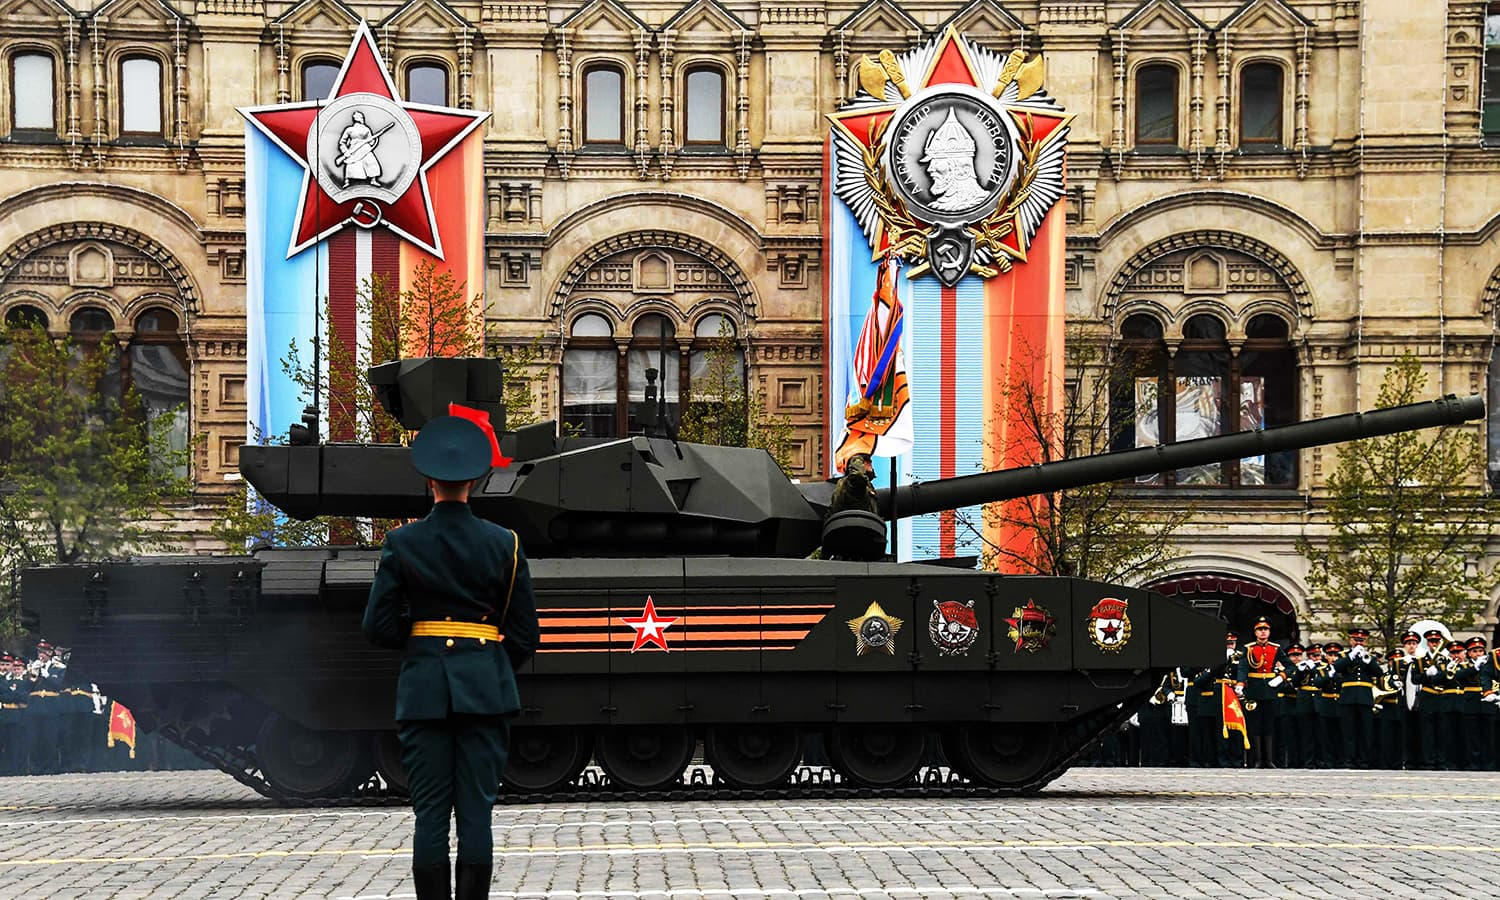 A T-14 Armata tank rides through Red Square. -AFP